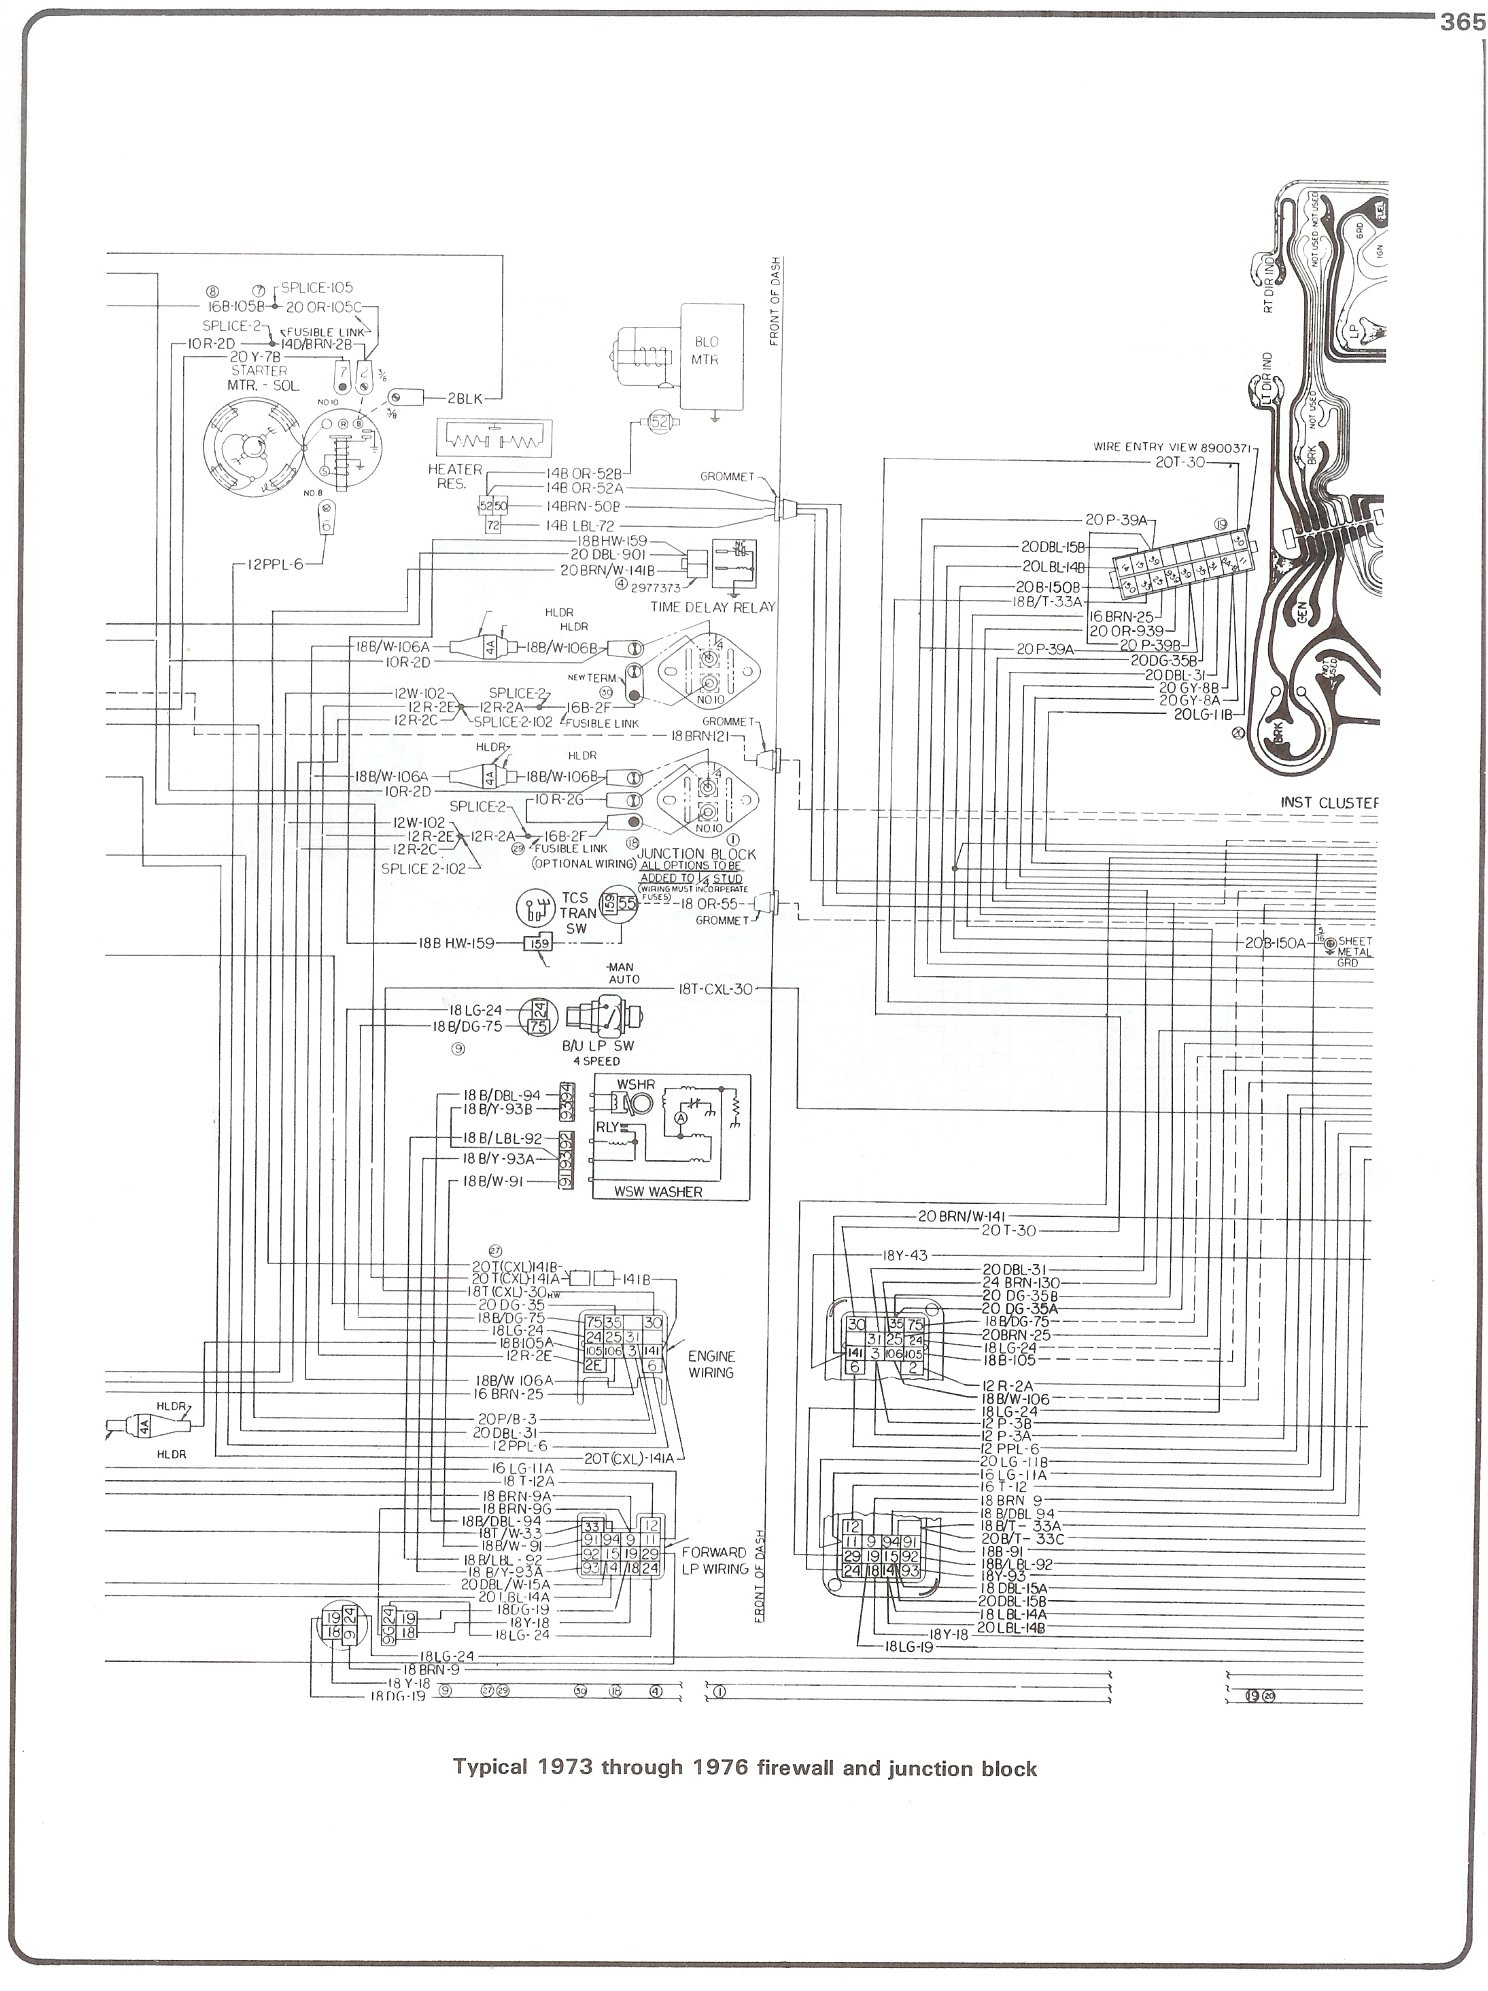 1975 chevy blazer wiring diagram